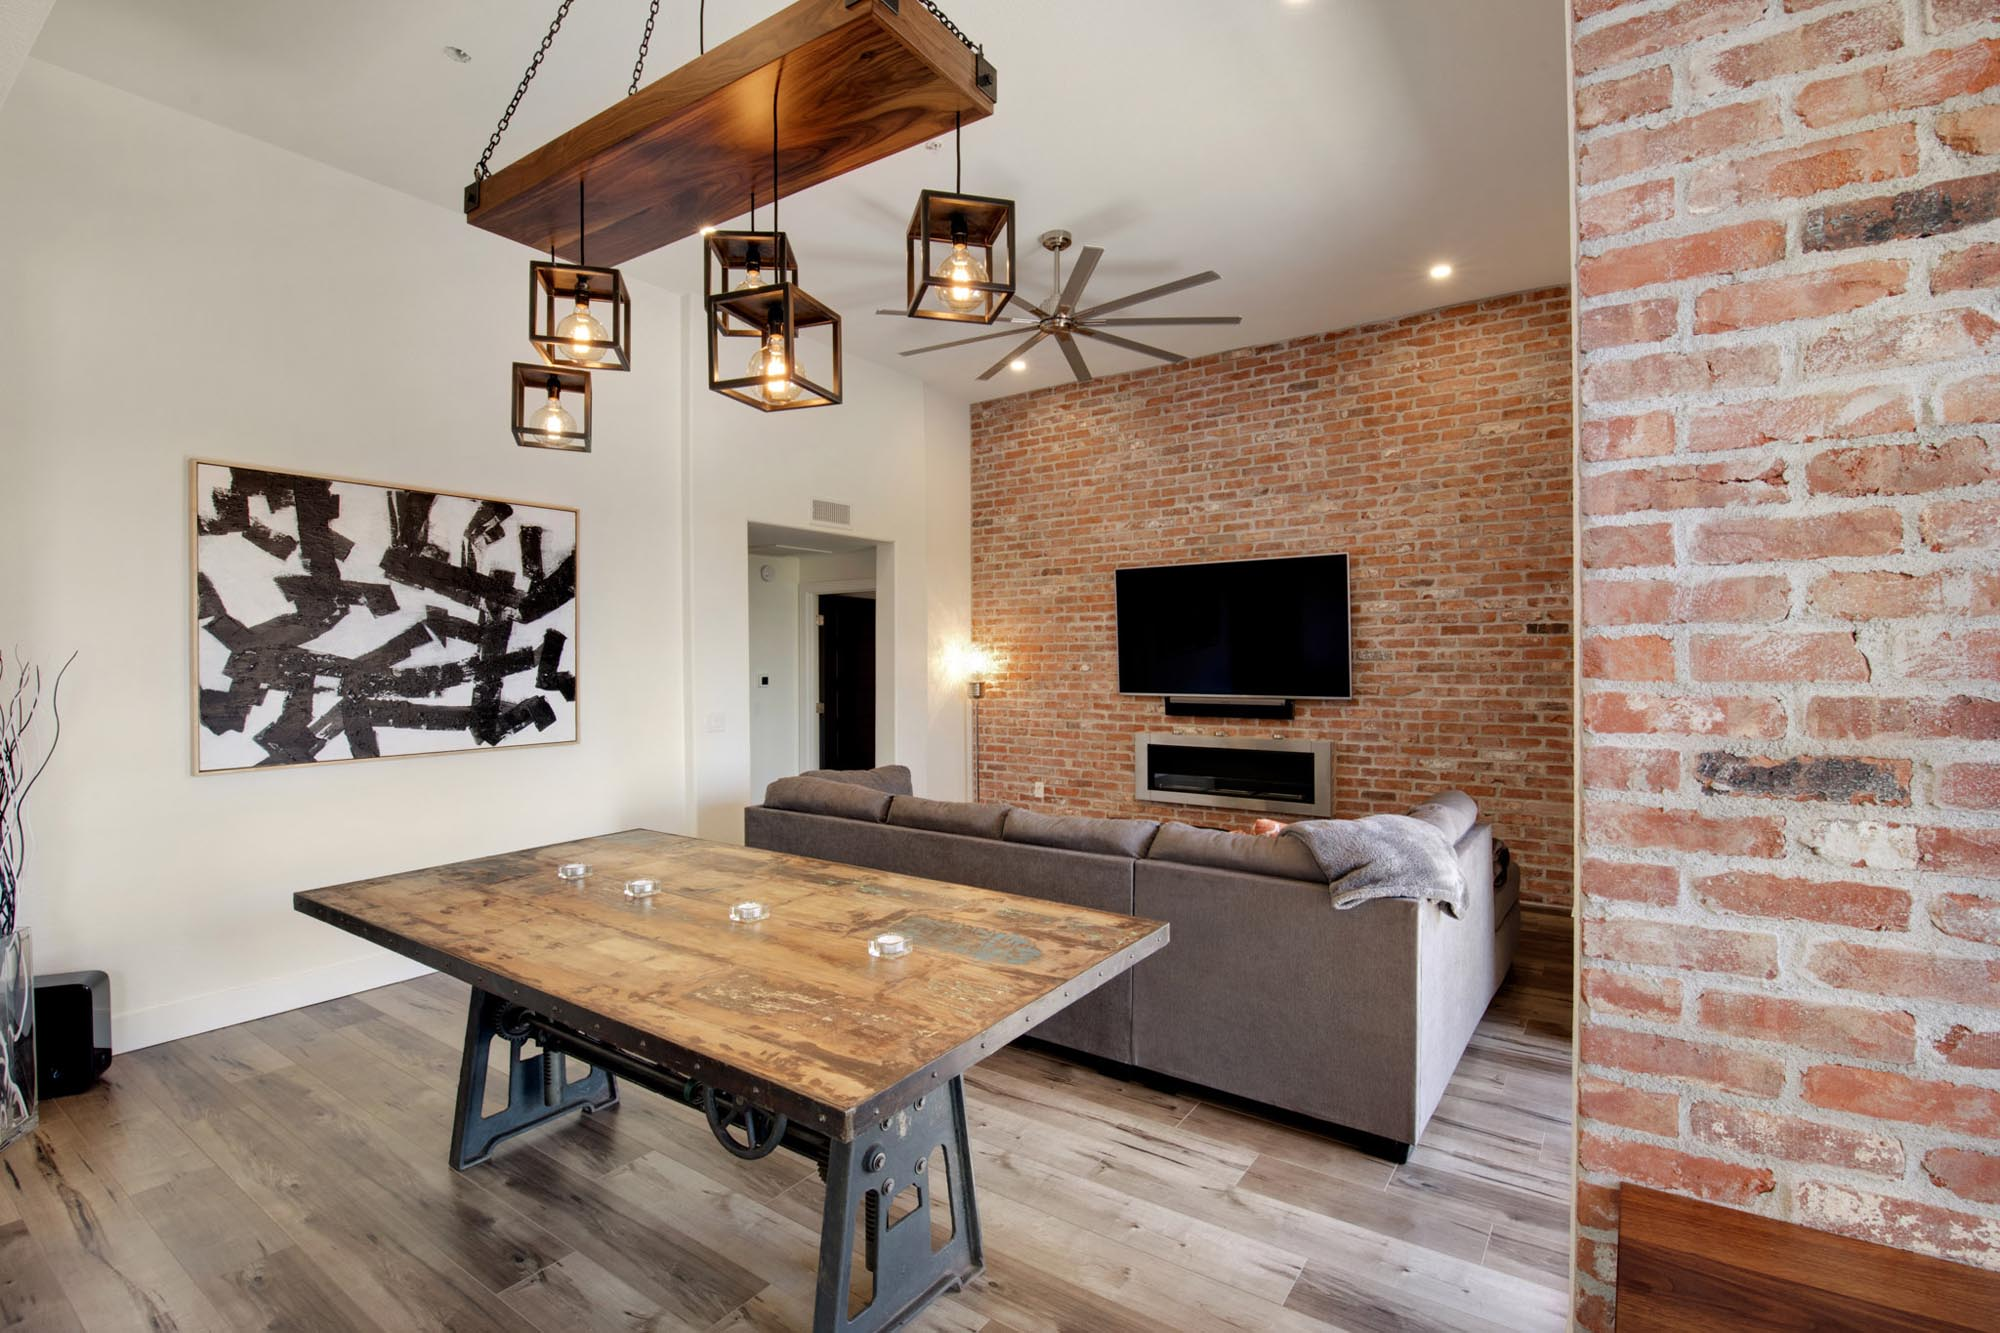 Living room with television on red brick wall